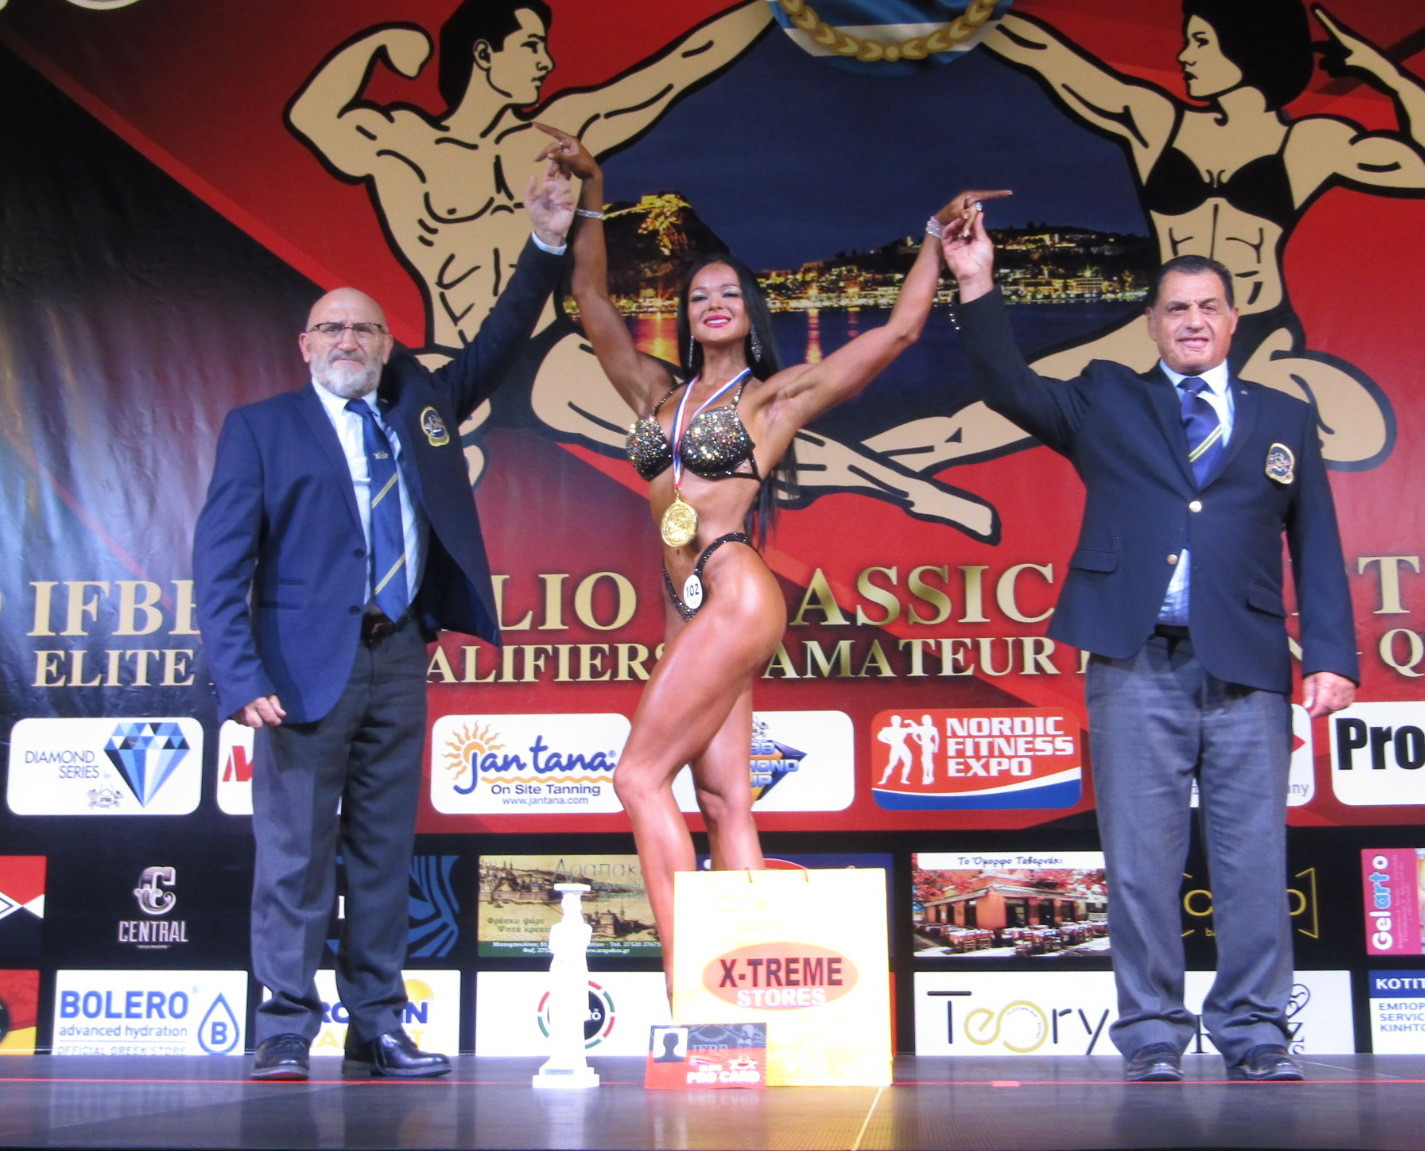 The Nafplio Classic is likely to become a regular on the bodybuilding calendar ©IFBB